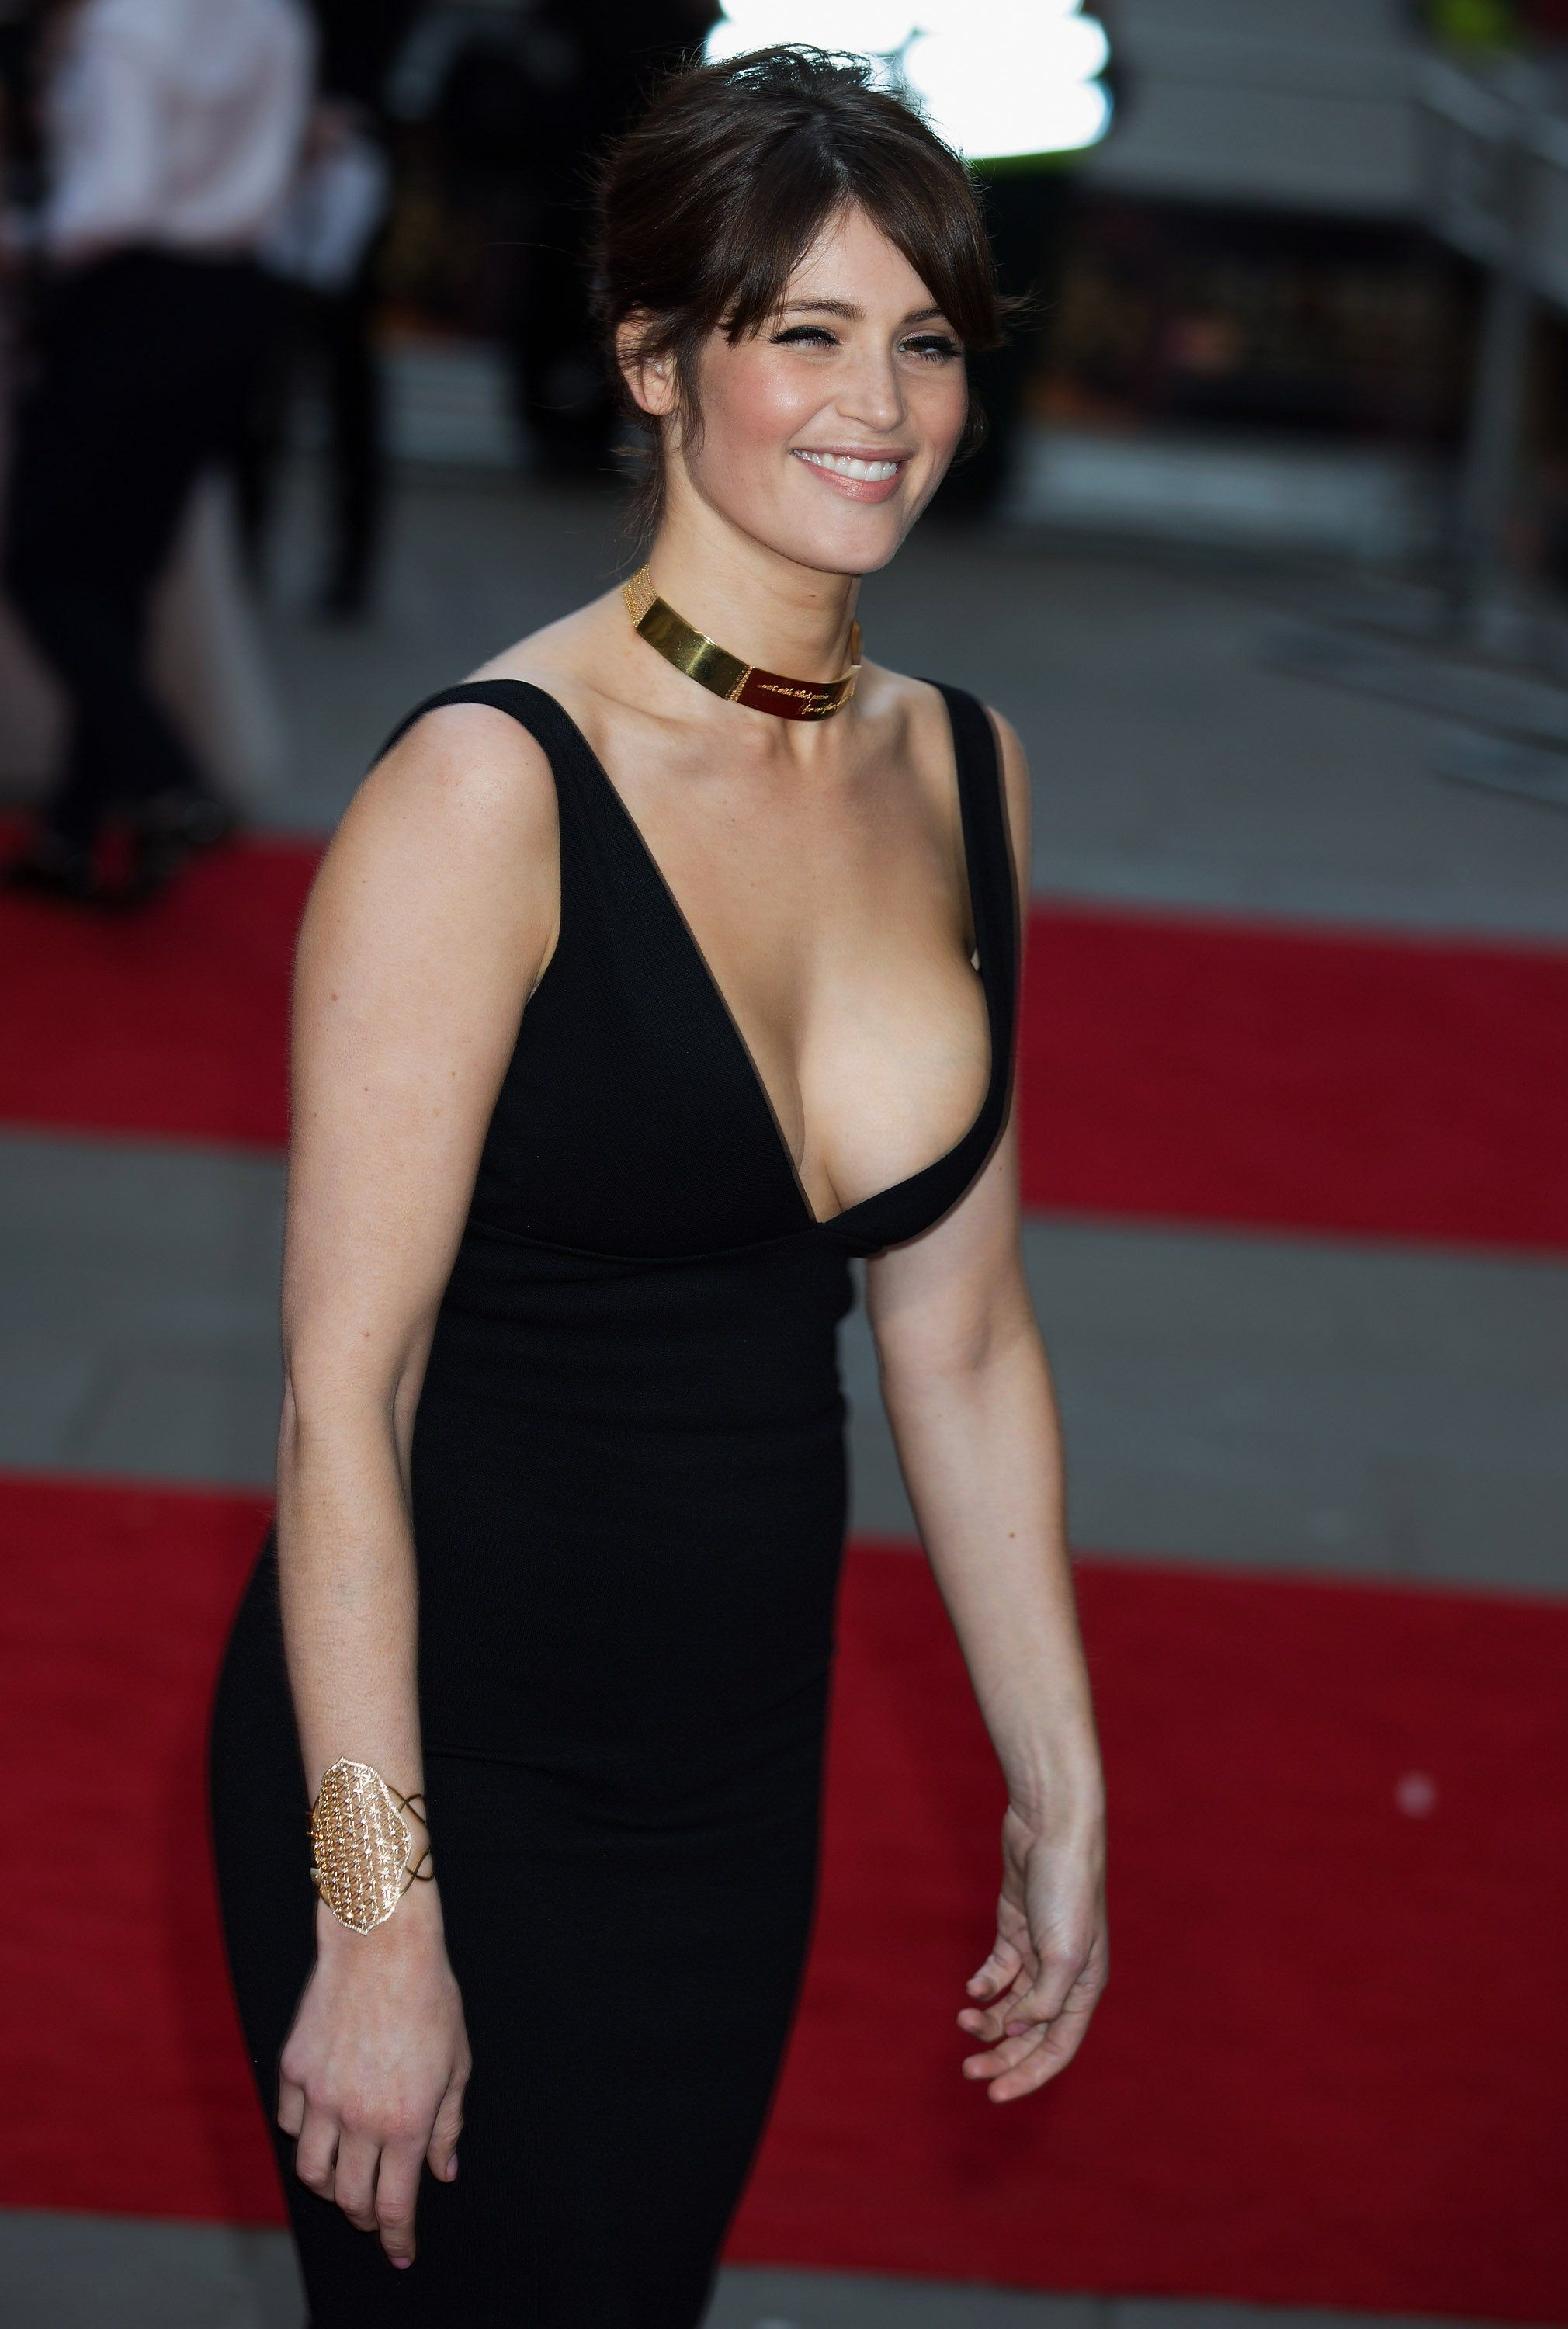 Gamma arterton hot galleries 10